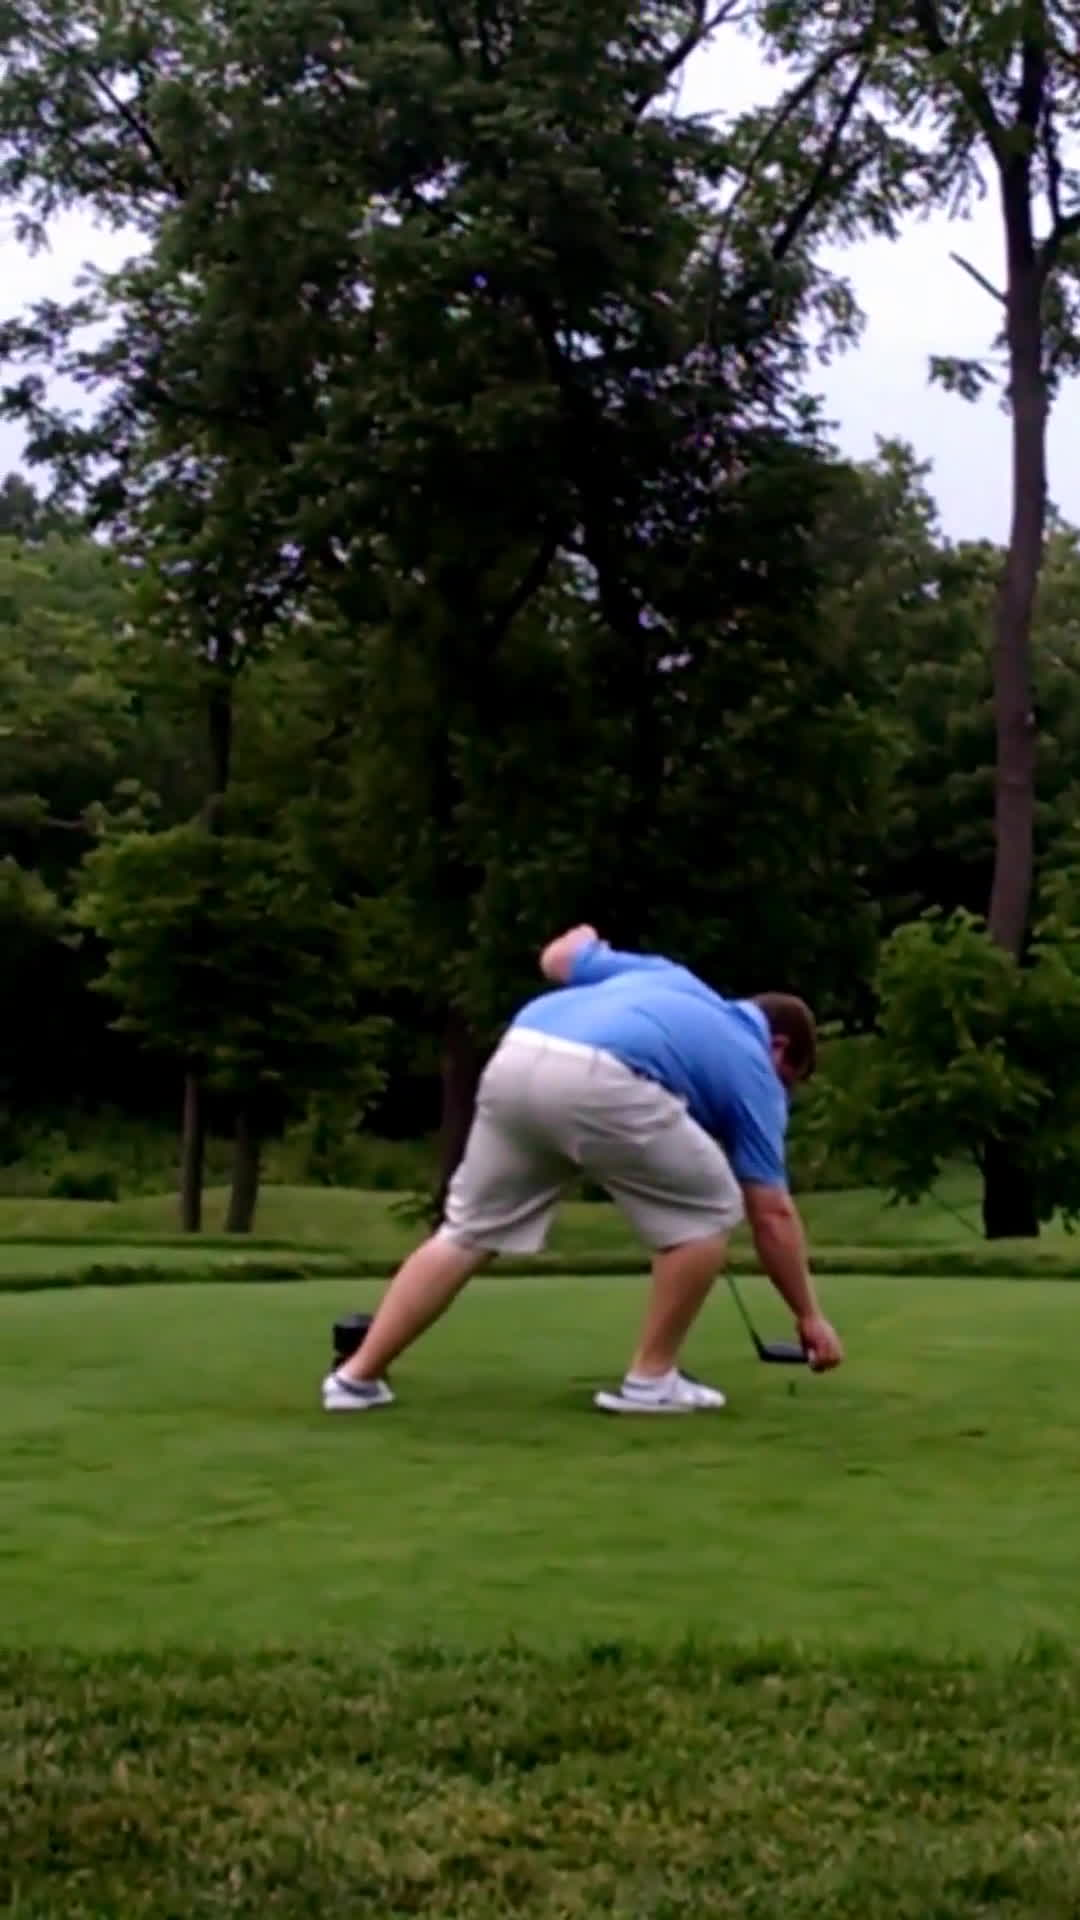 BetterEveryLoop, holdmybeer, holdmyfries, Drunk long drive golf fail GIFs